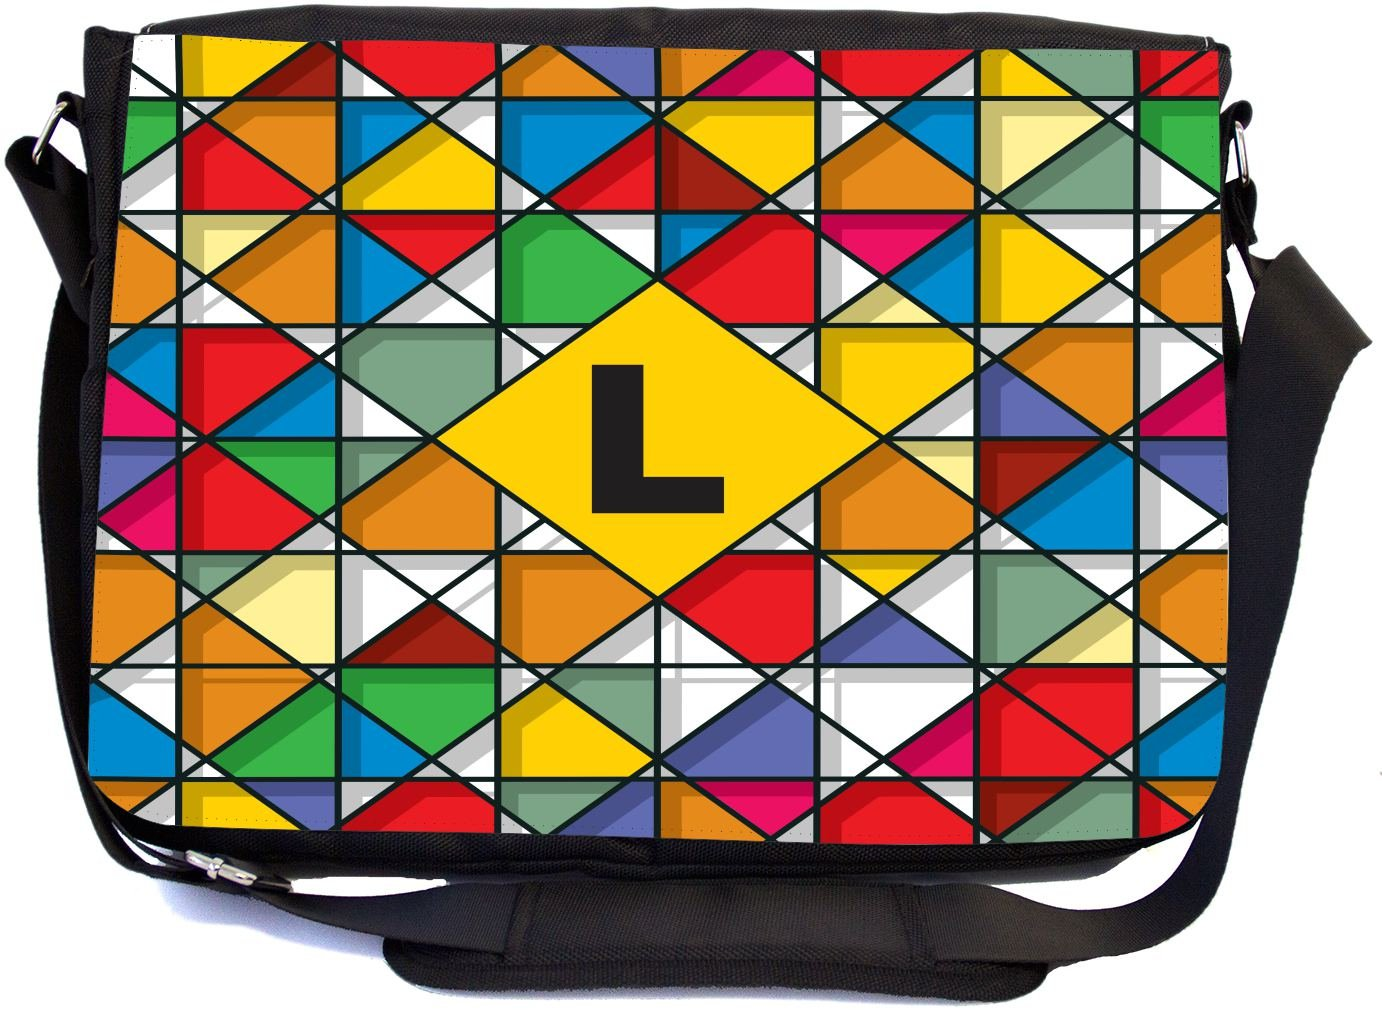 Rikki Knight Letter L Monogram Vibrant Colors Stained Glass Design Design Combo Multifunction Messenger Laptop Bag - with Padded Insert for School or Work - Includes Wristlet & Mirror